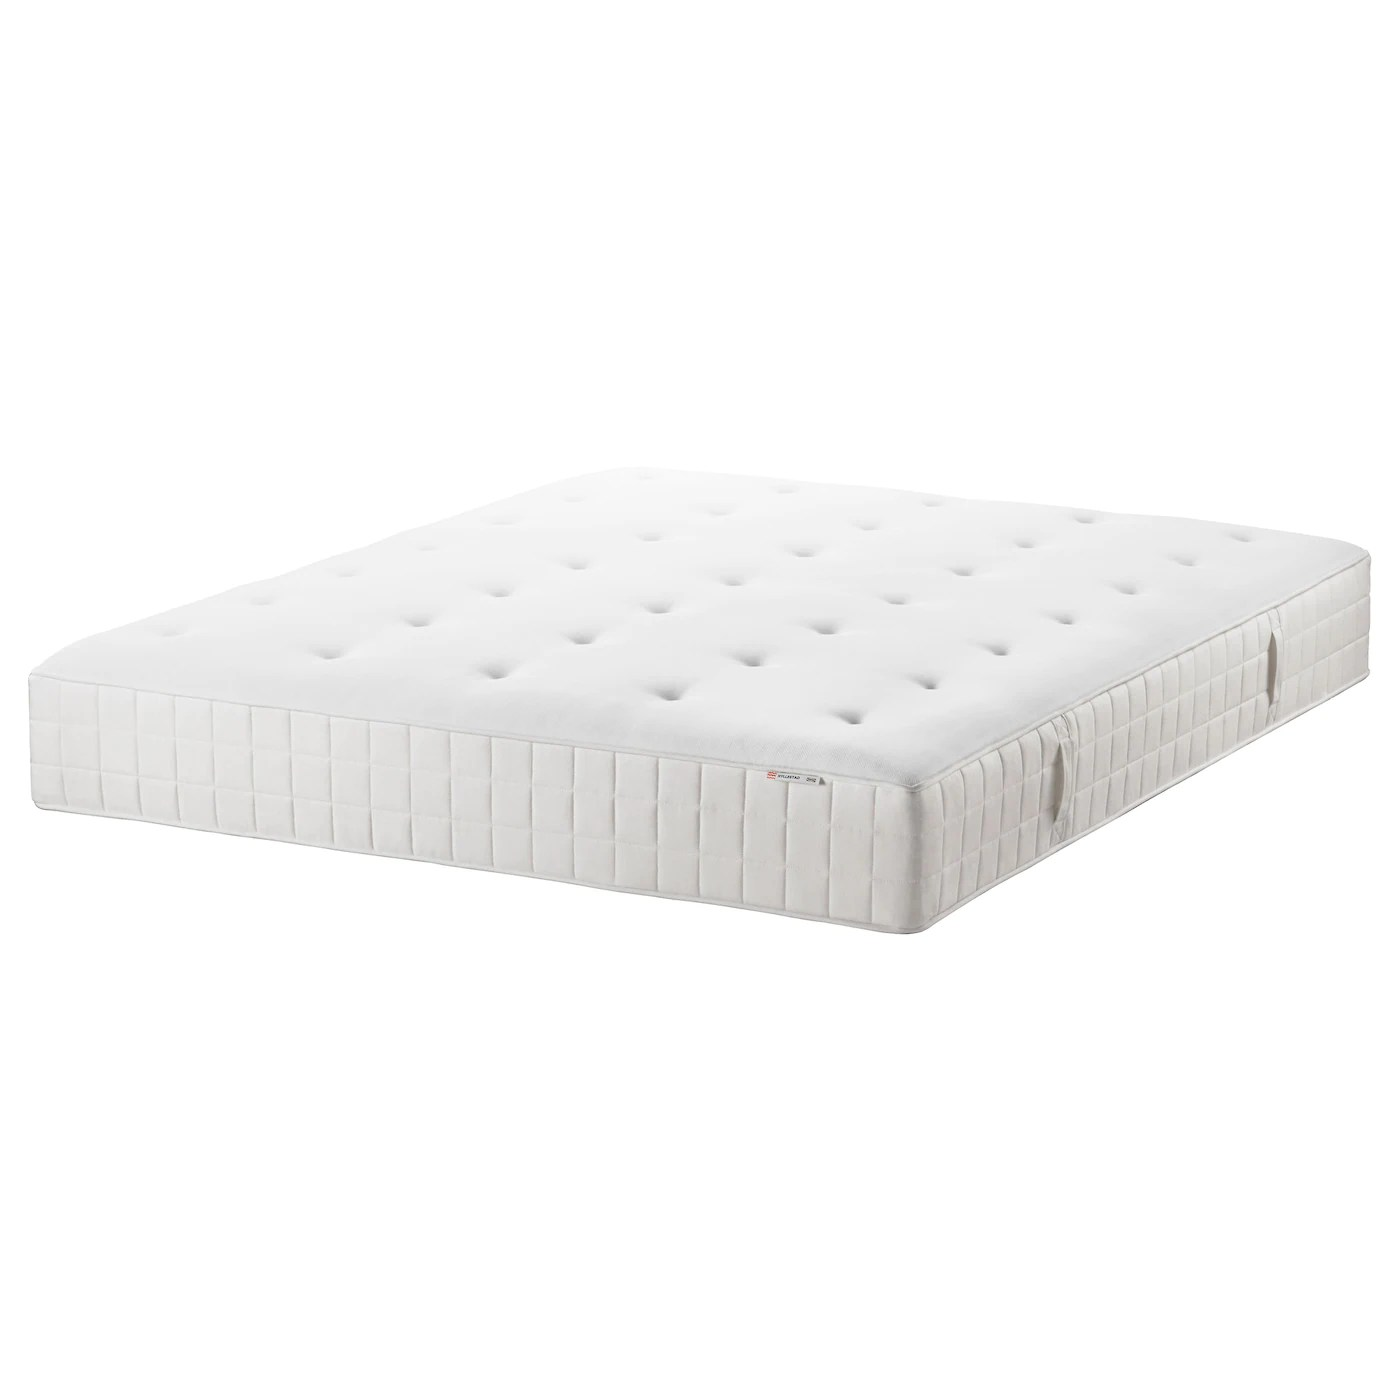 Thin Mattress Topper Hyllestad Pocket Sprung Mattress Medium Firm White